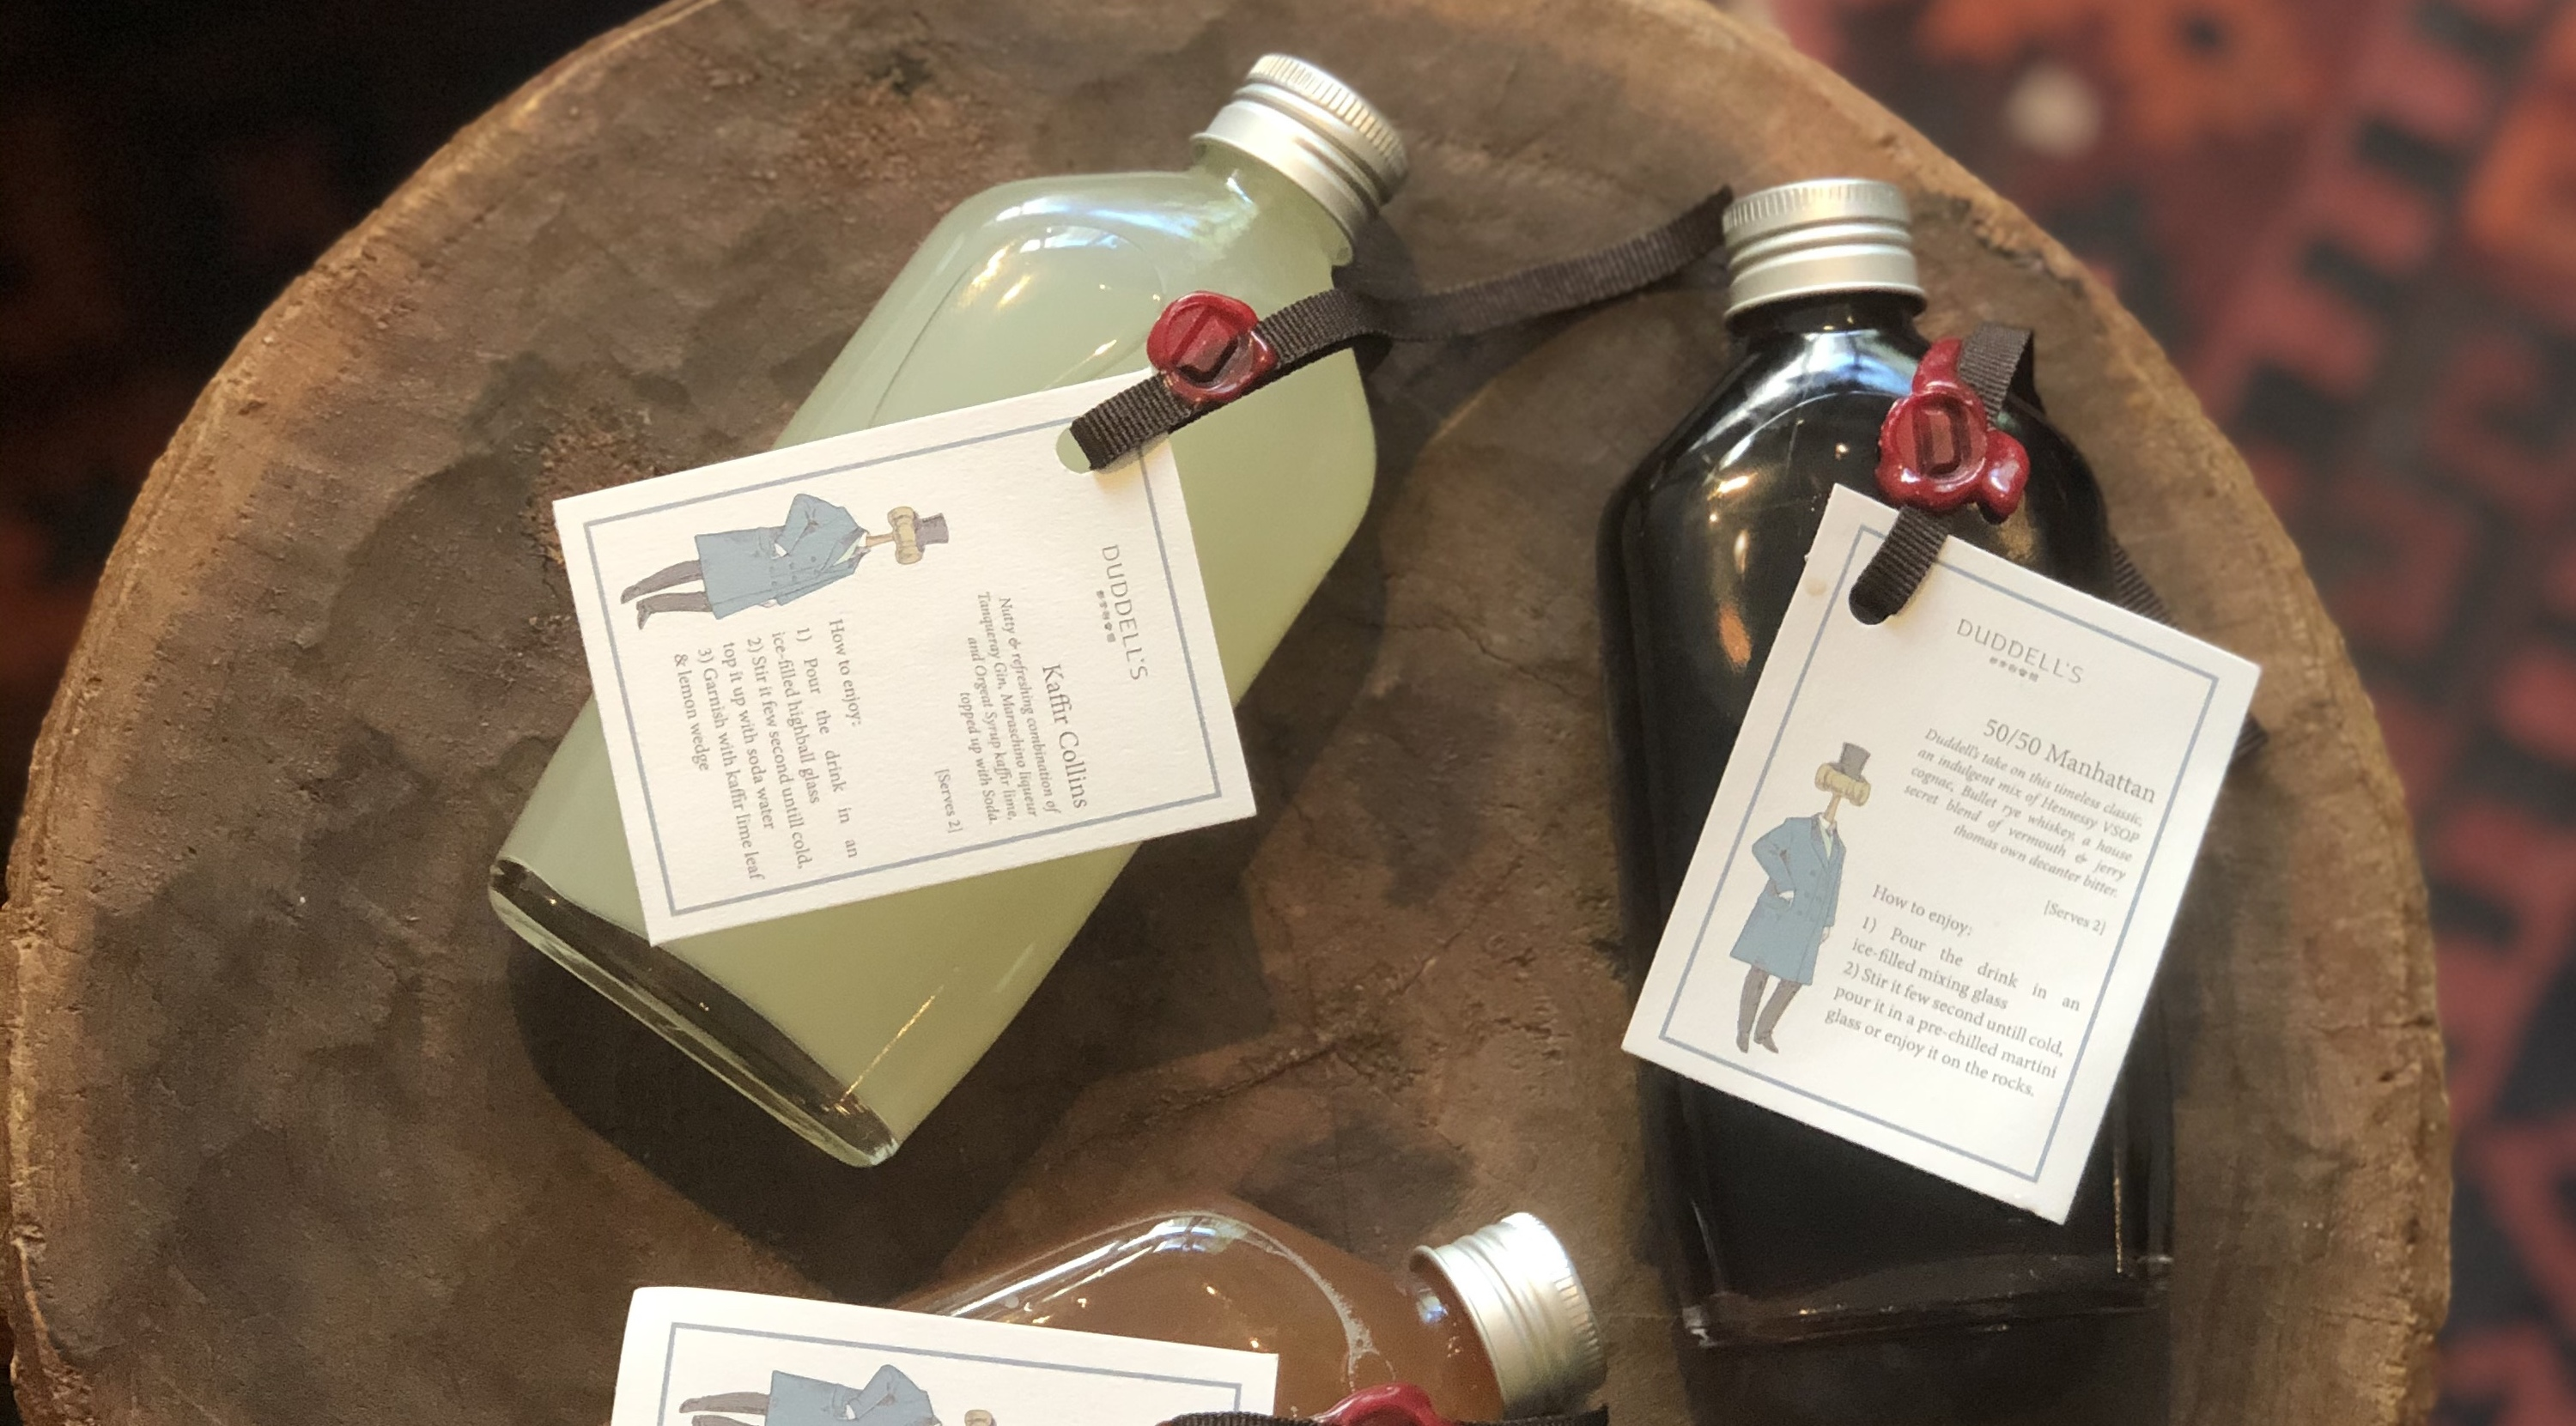 Duddell's bottled cocktail